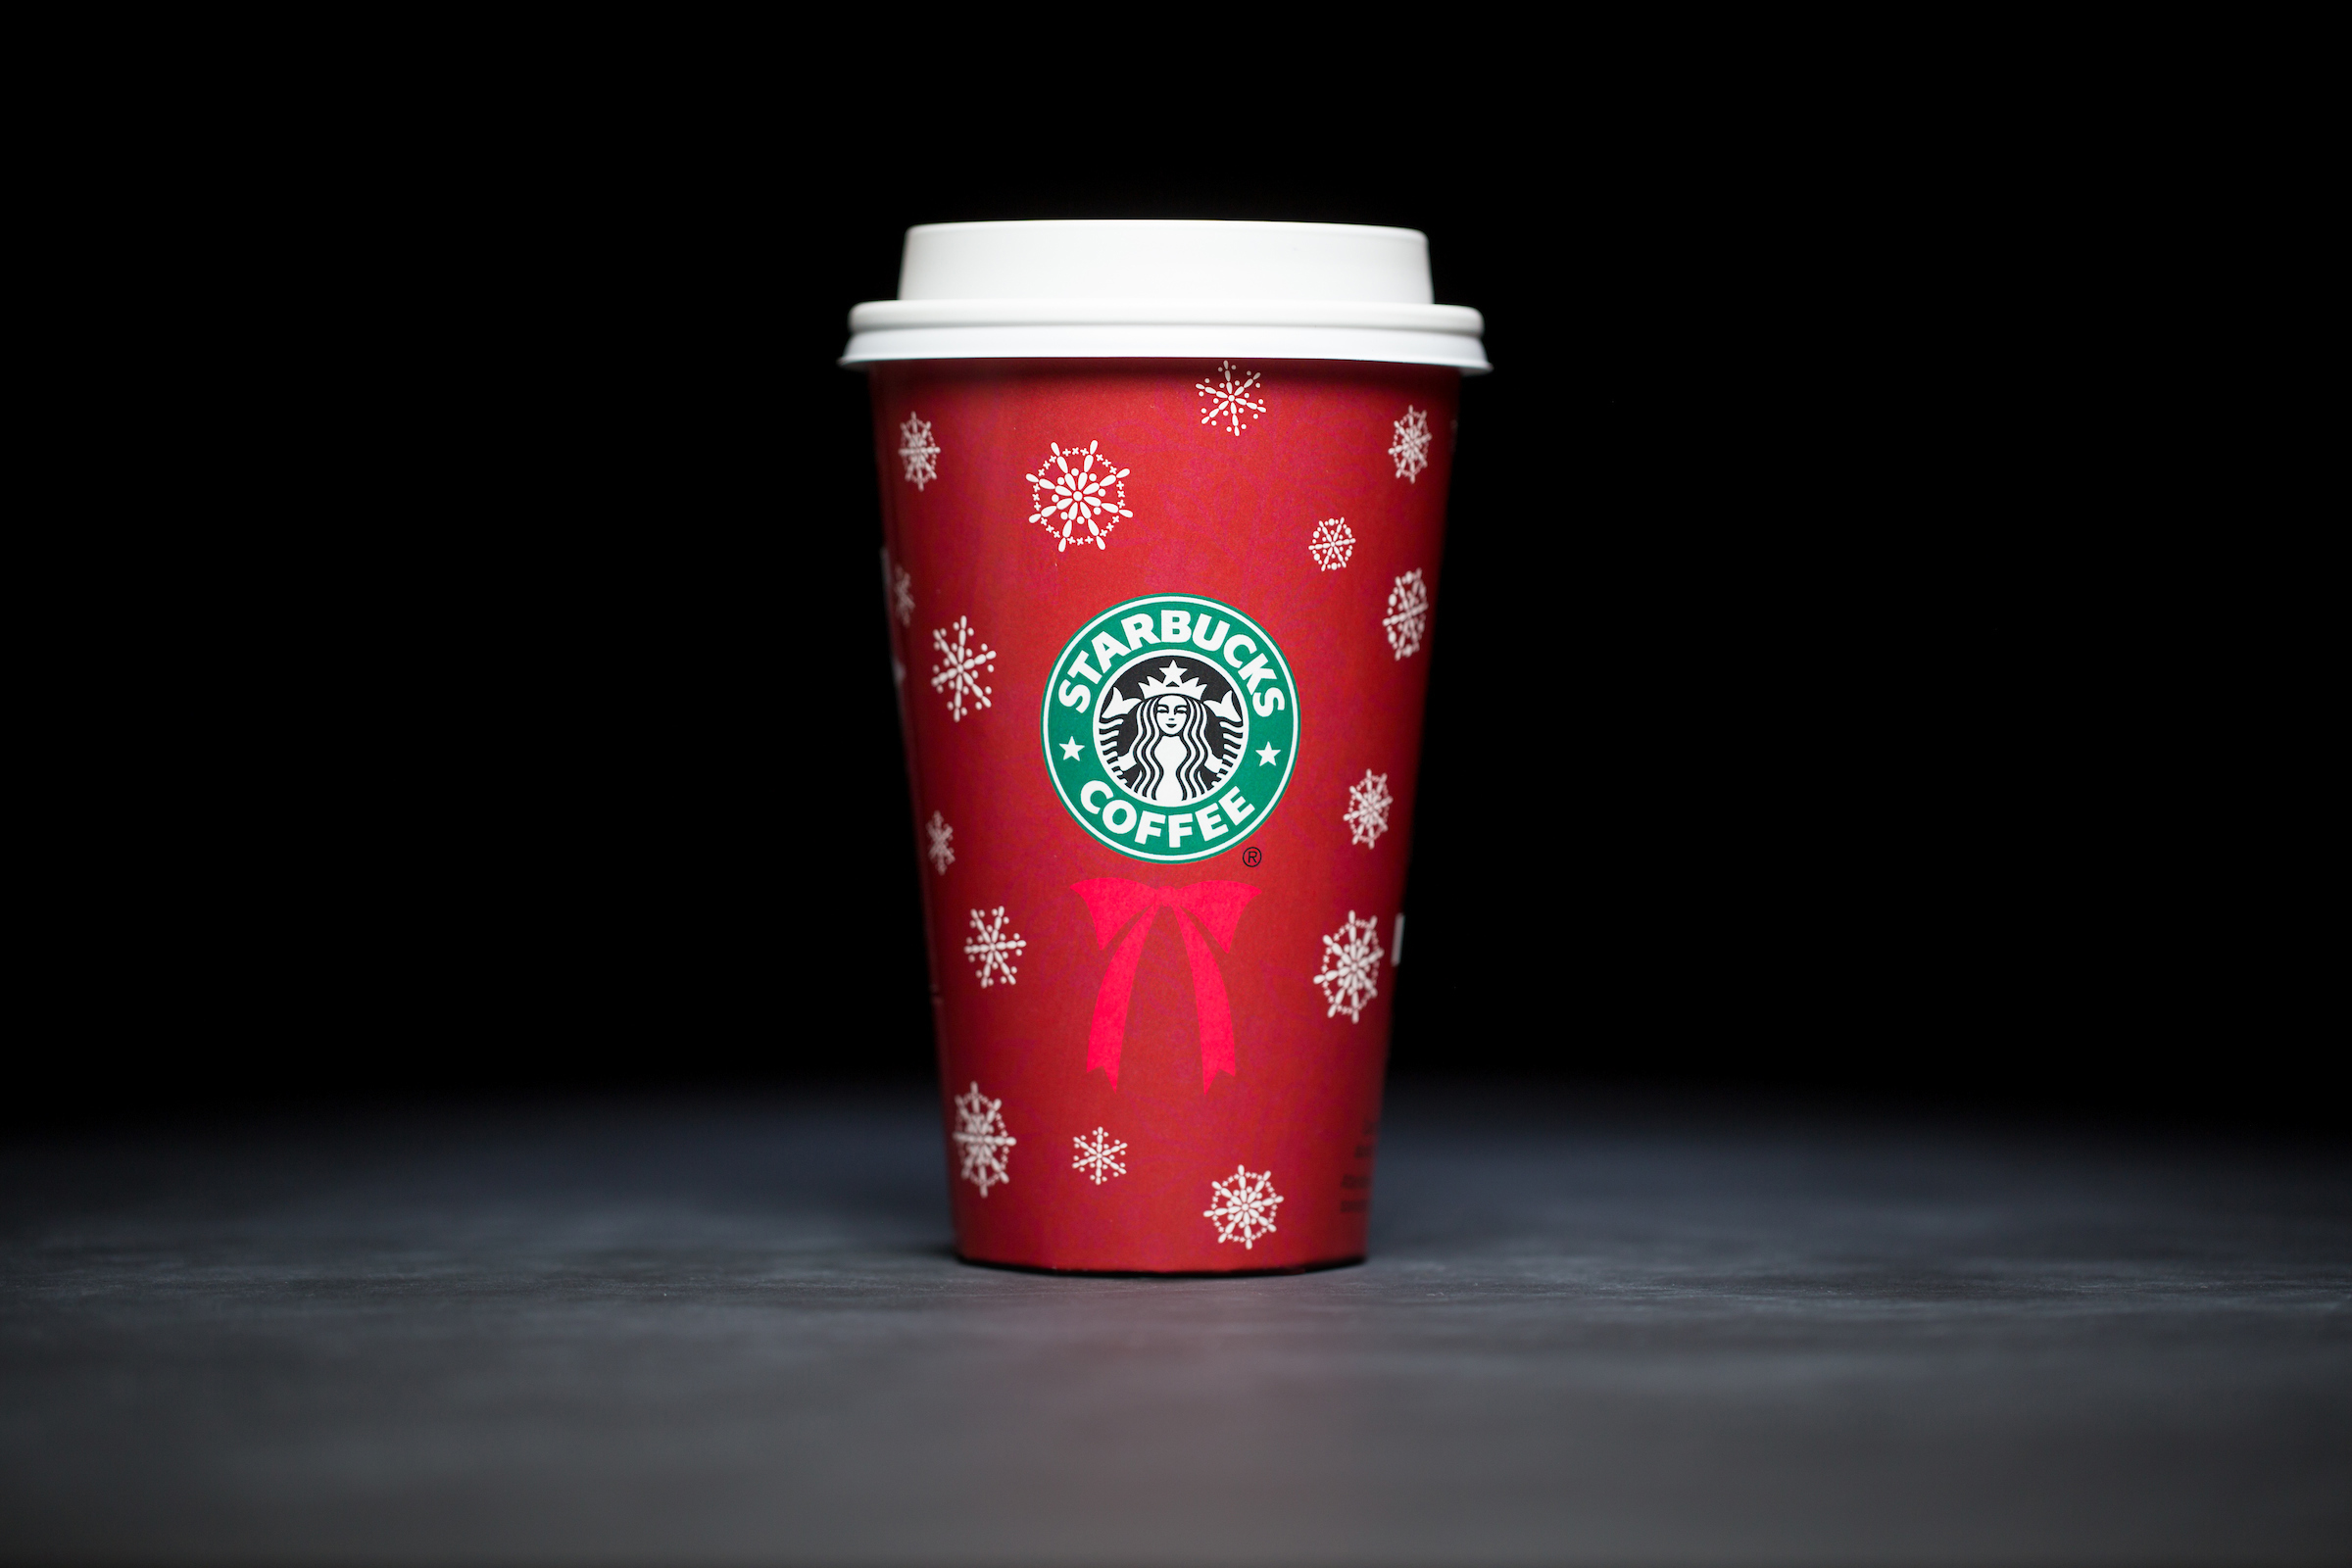 2004: For 20 years, Starbucks have released a range of holiday cup designs, most of them based around their world famous red cup. It's not easy to find the very first Starbucks holiday cups, which made their debut in stores in 1997. Few were saved, and electronic design files were lost in an earthquake in 2001. Even an Internet search is unyielding, with the cups having made their arrival long before the first selfie. But, we have them here! Click on for a photos of all 20 holidays cup designs. (Image: Joshua Trujillo/Cover Images)